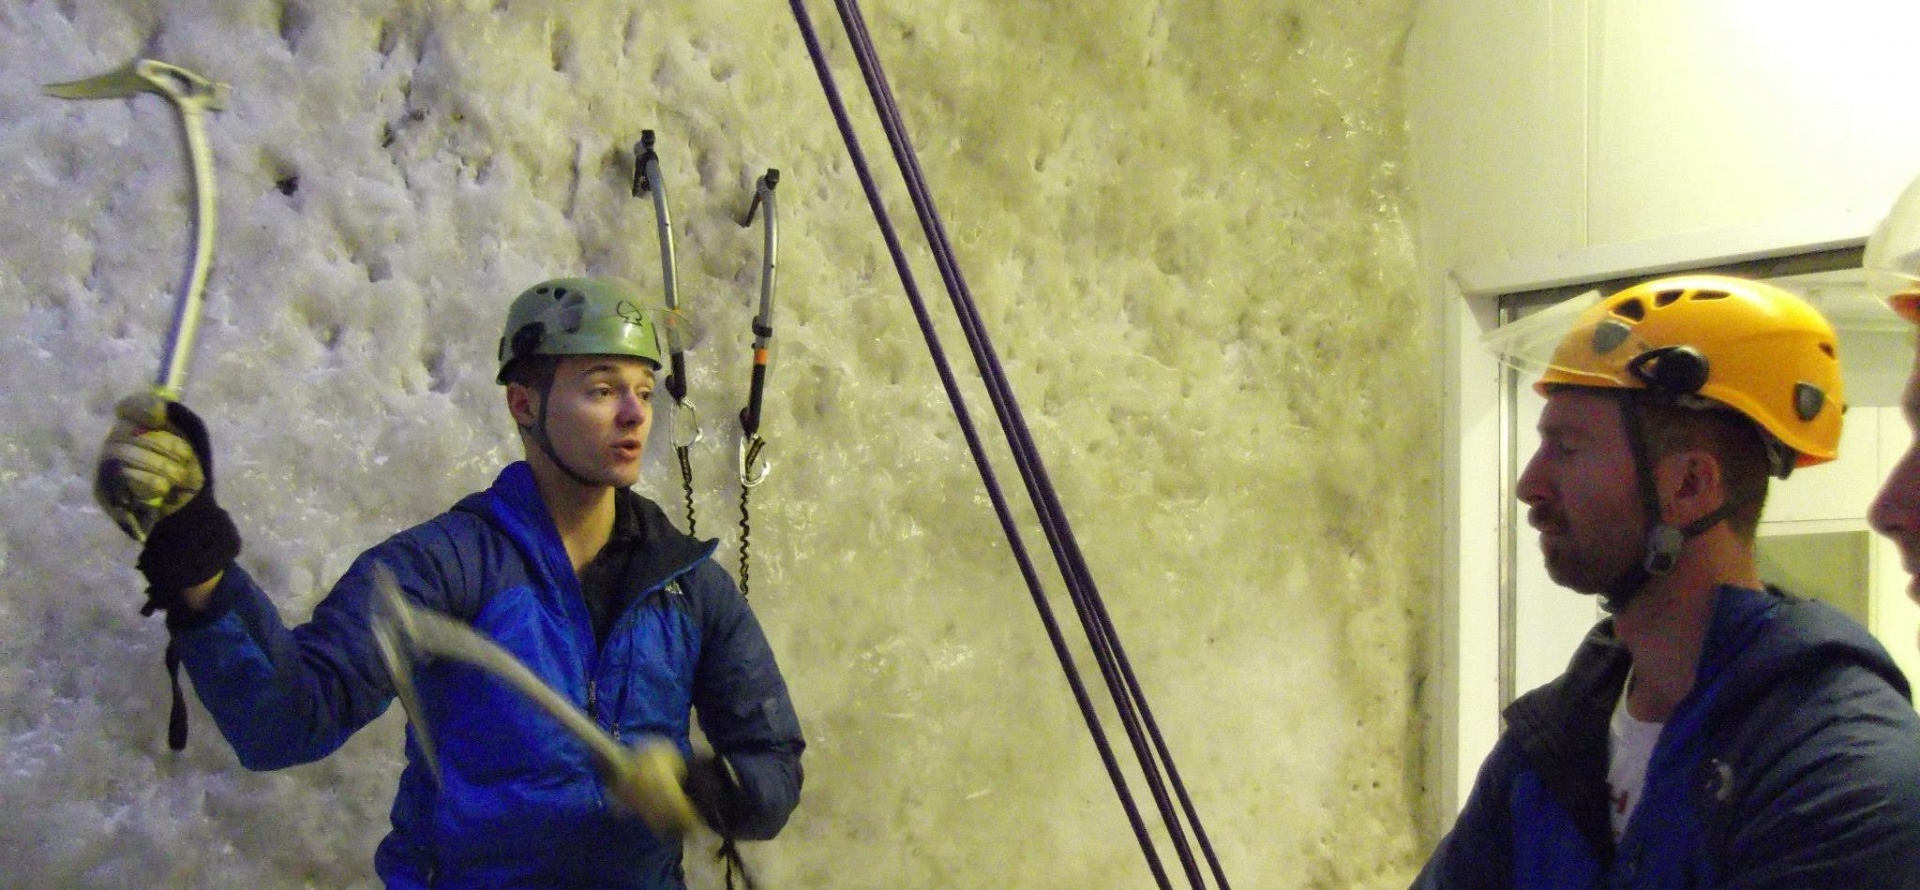 Discover Indoor Ice Climbing - London-4